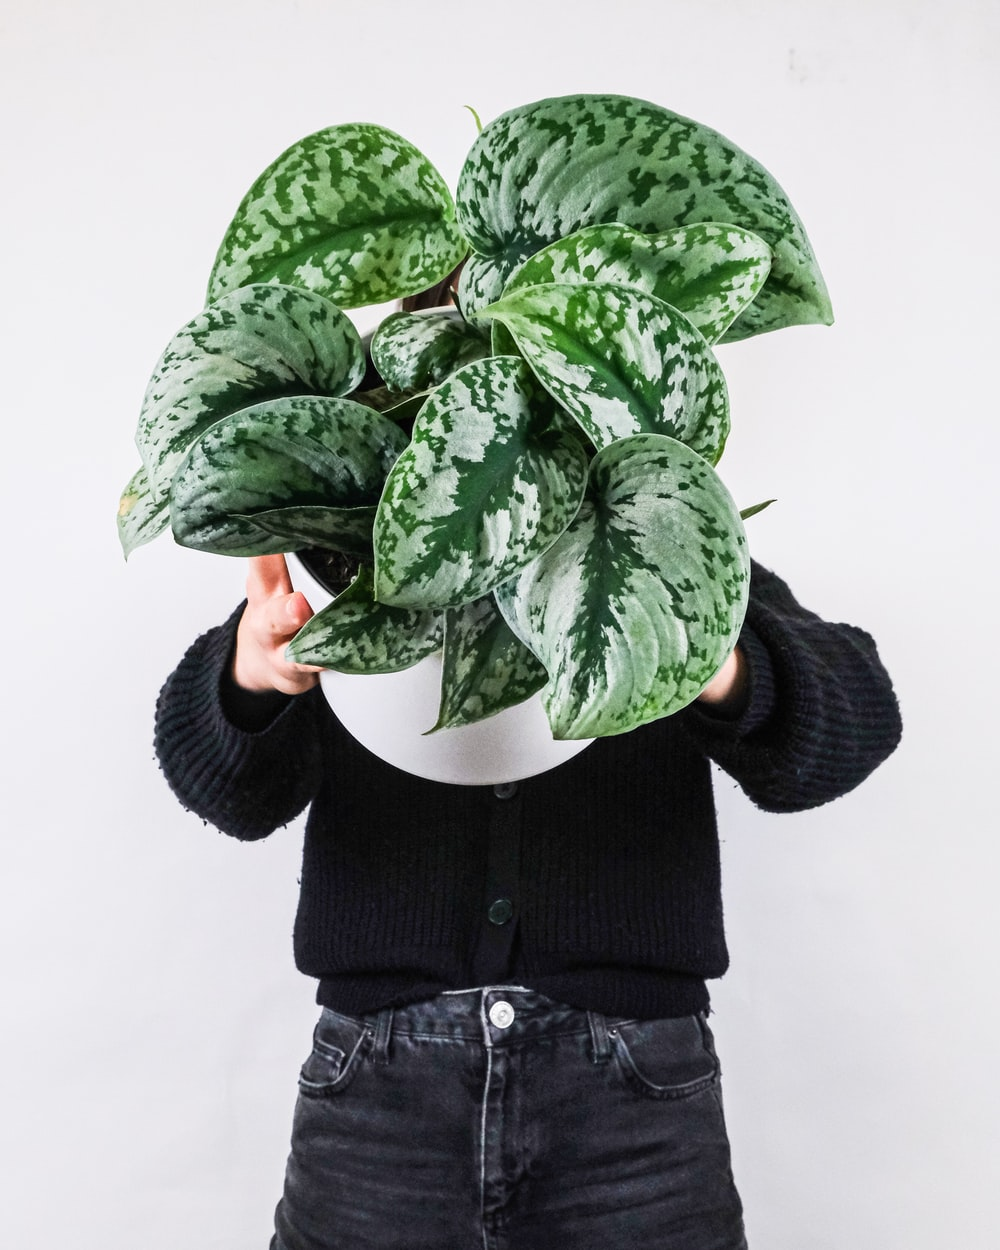 person in black jacket holding green leaves